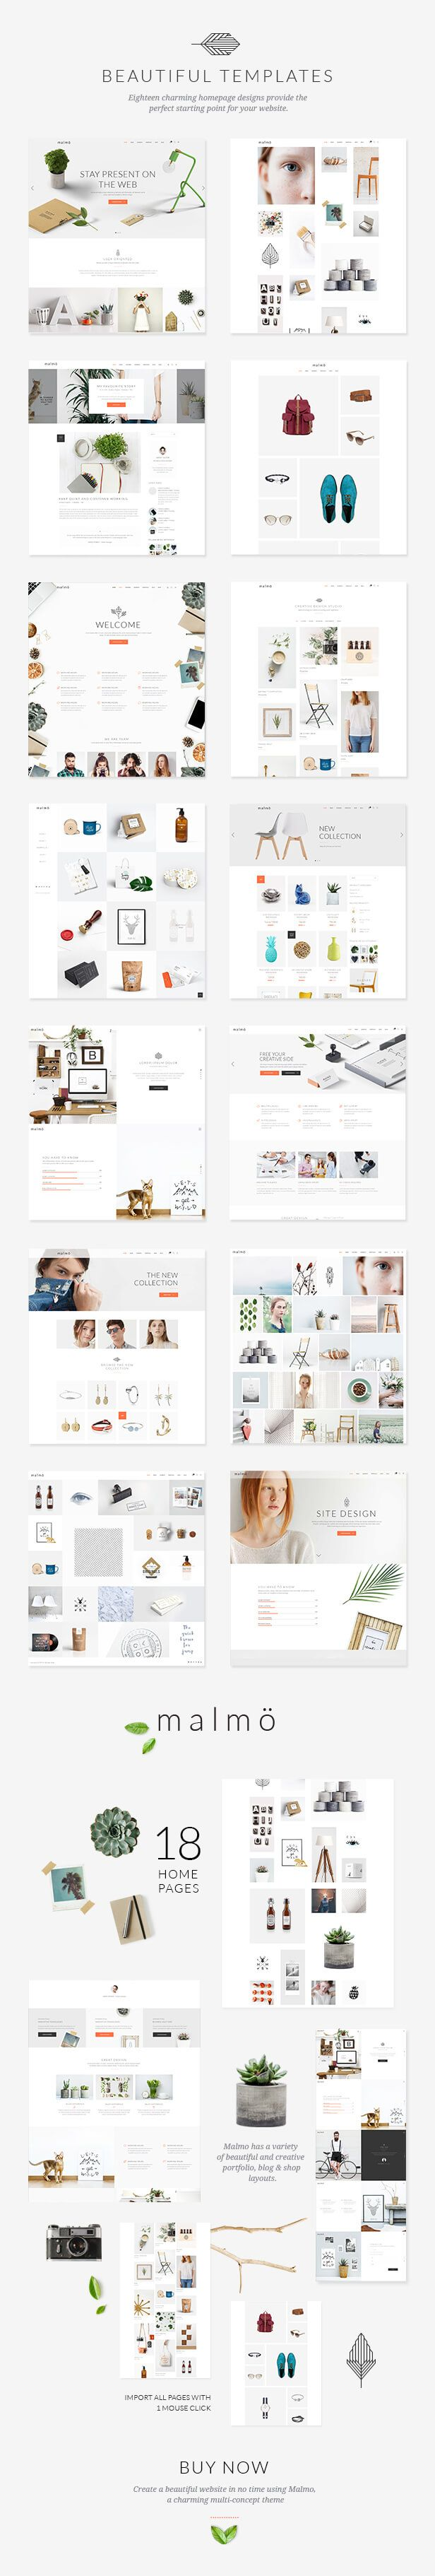 theme features easy to use no coding knowledge required powerful admin panel large collection of